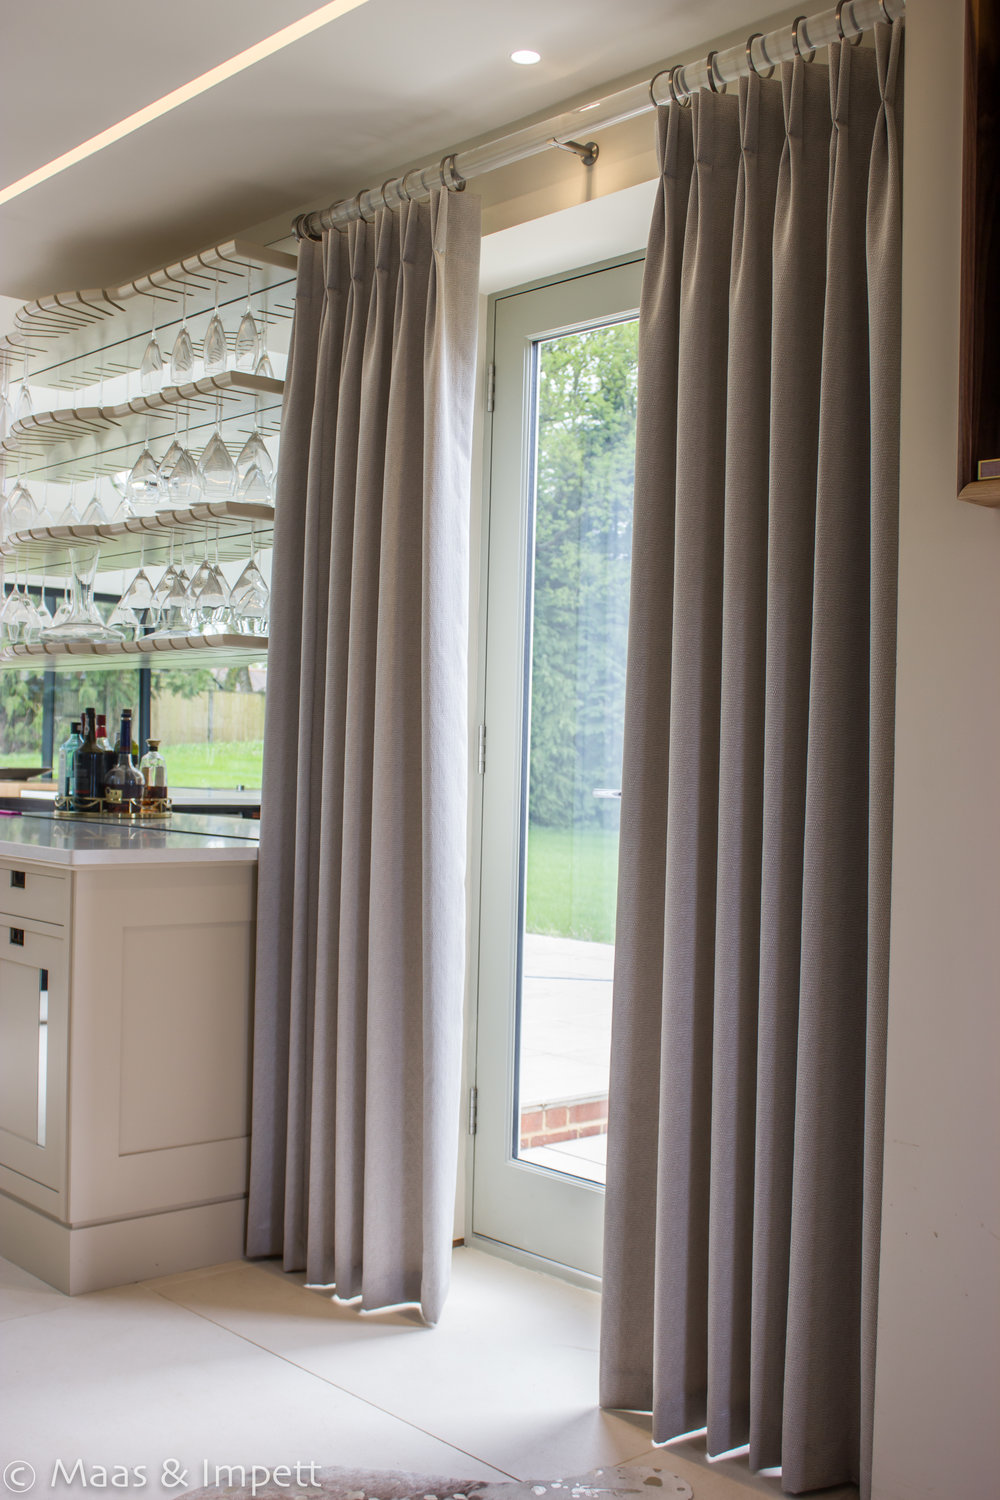 Bespoke Curtains by Interior designers